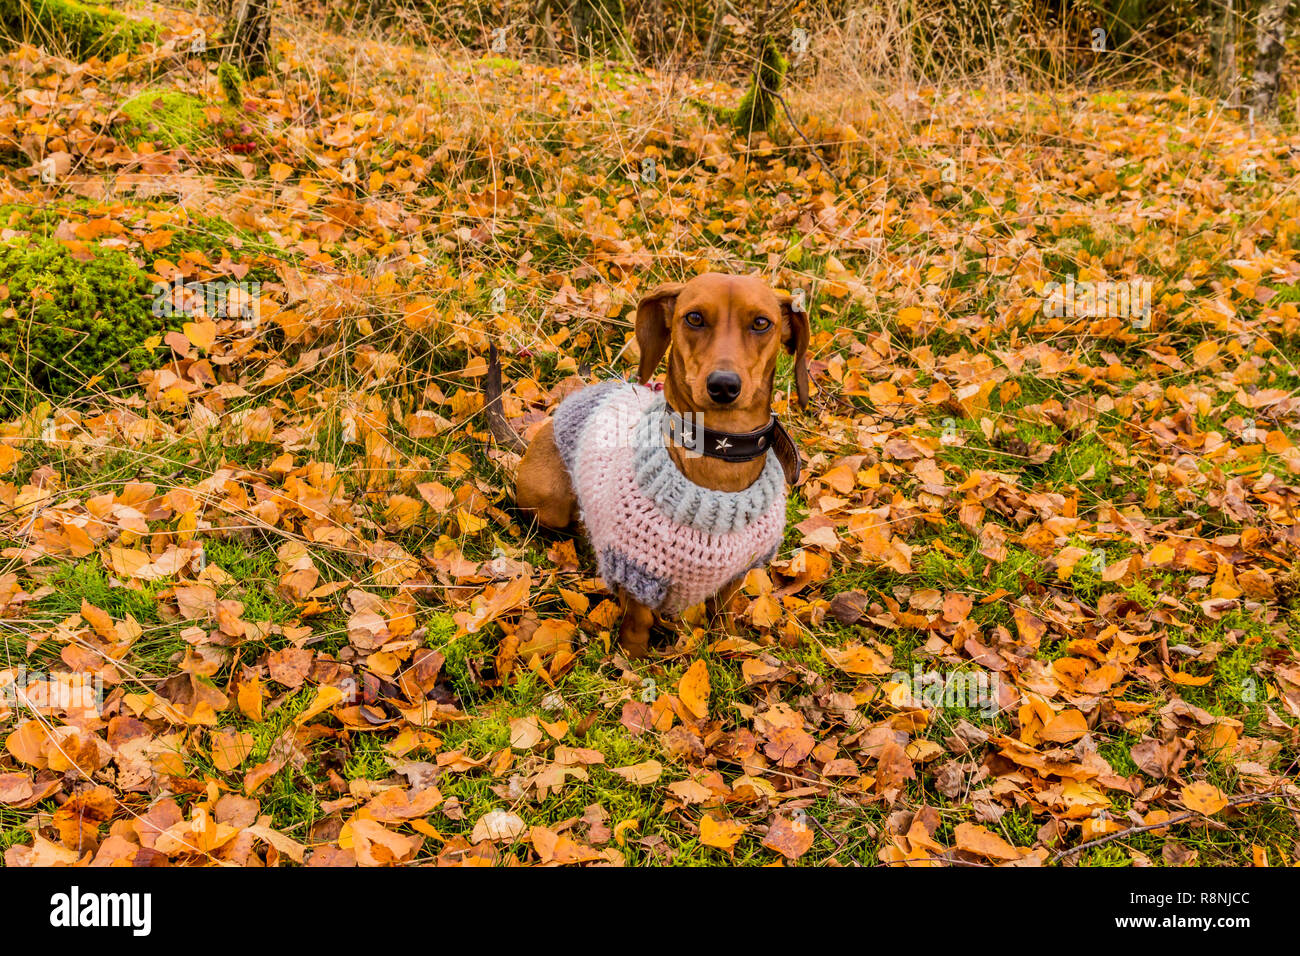 image of a dachshund with a sweater sitting very attentive on grass covered with yellow leaves in the forest on a wonderful autumn day Stock Photo